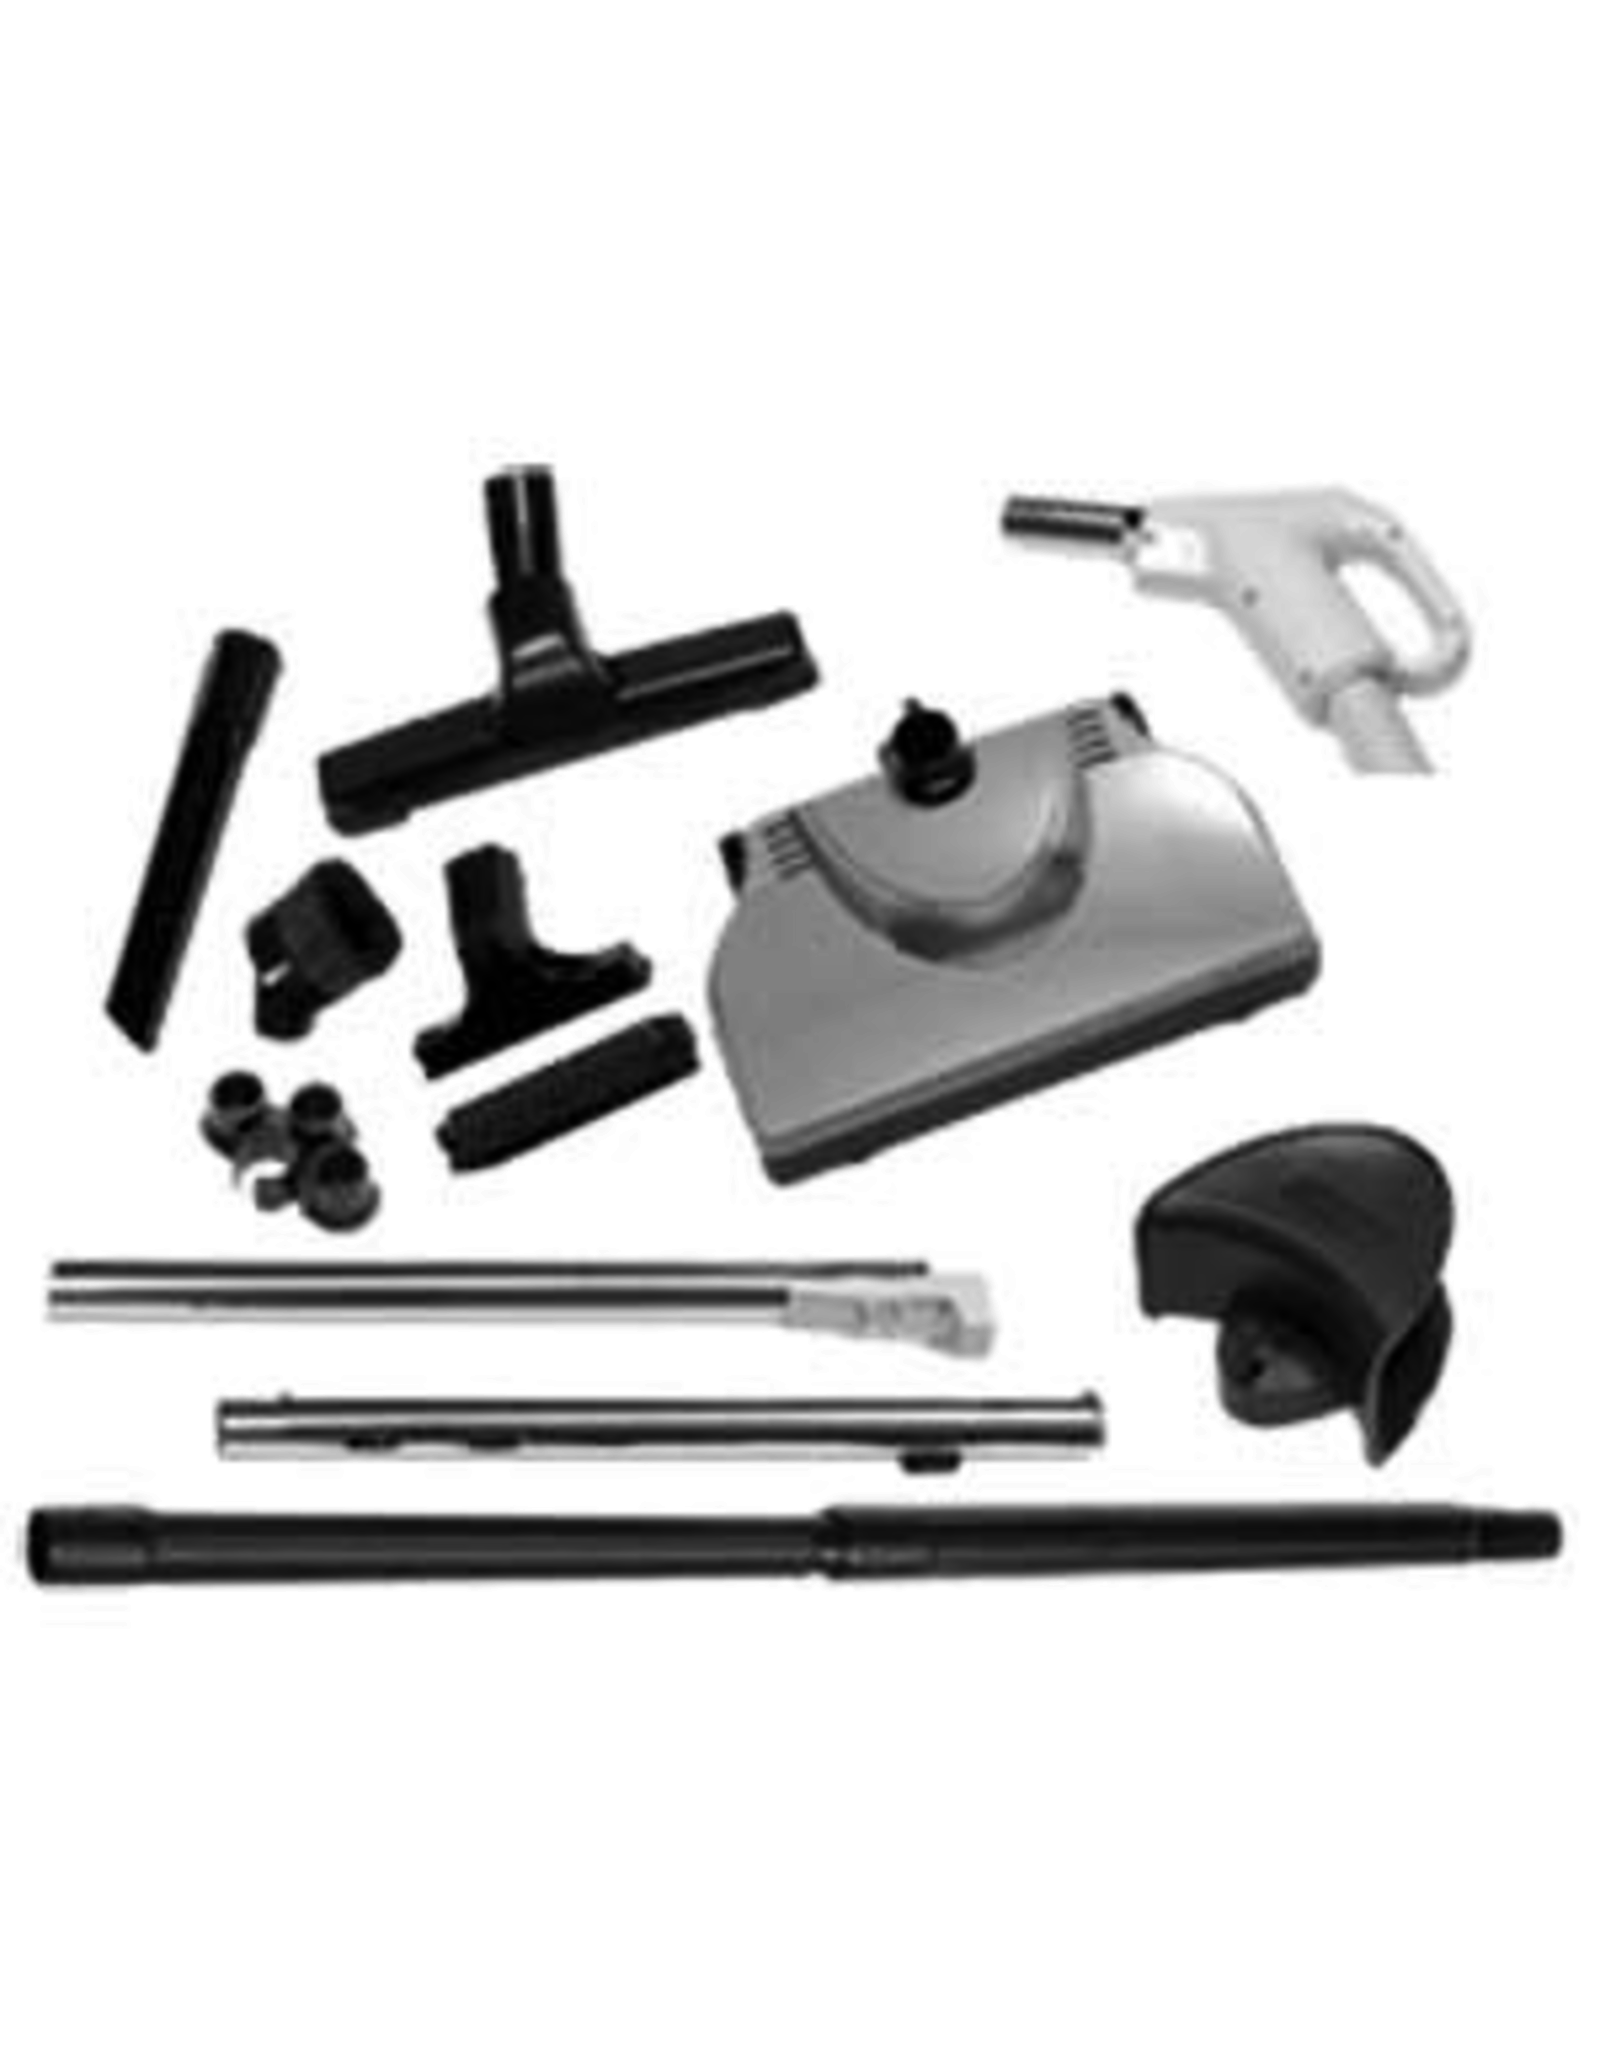 C-Vac Pack Attachment Set